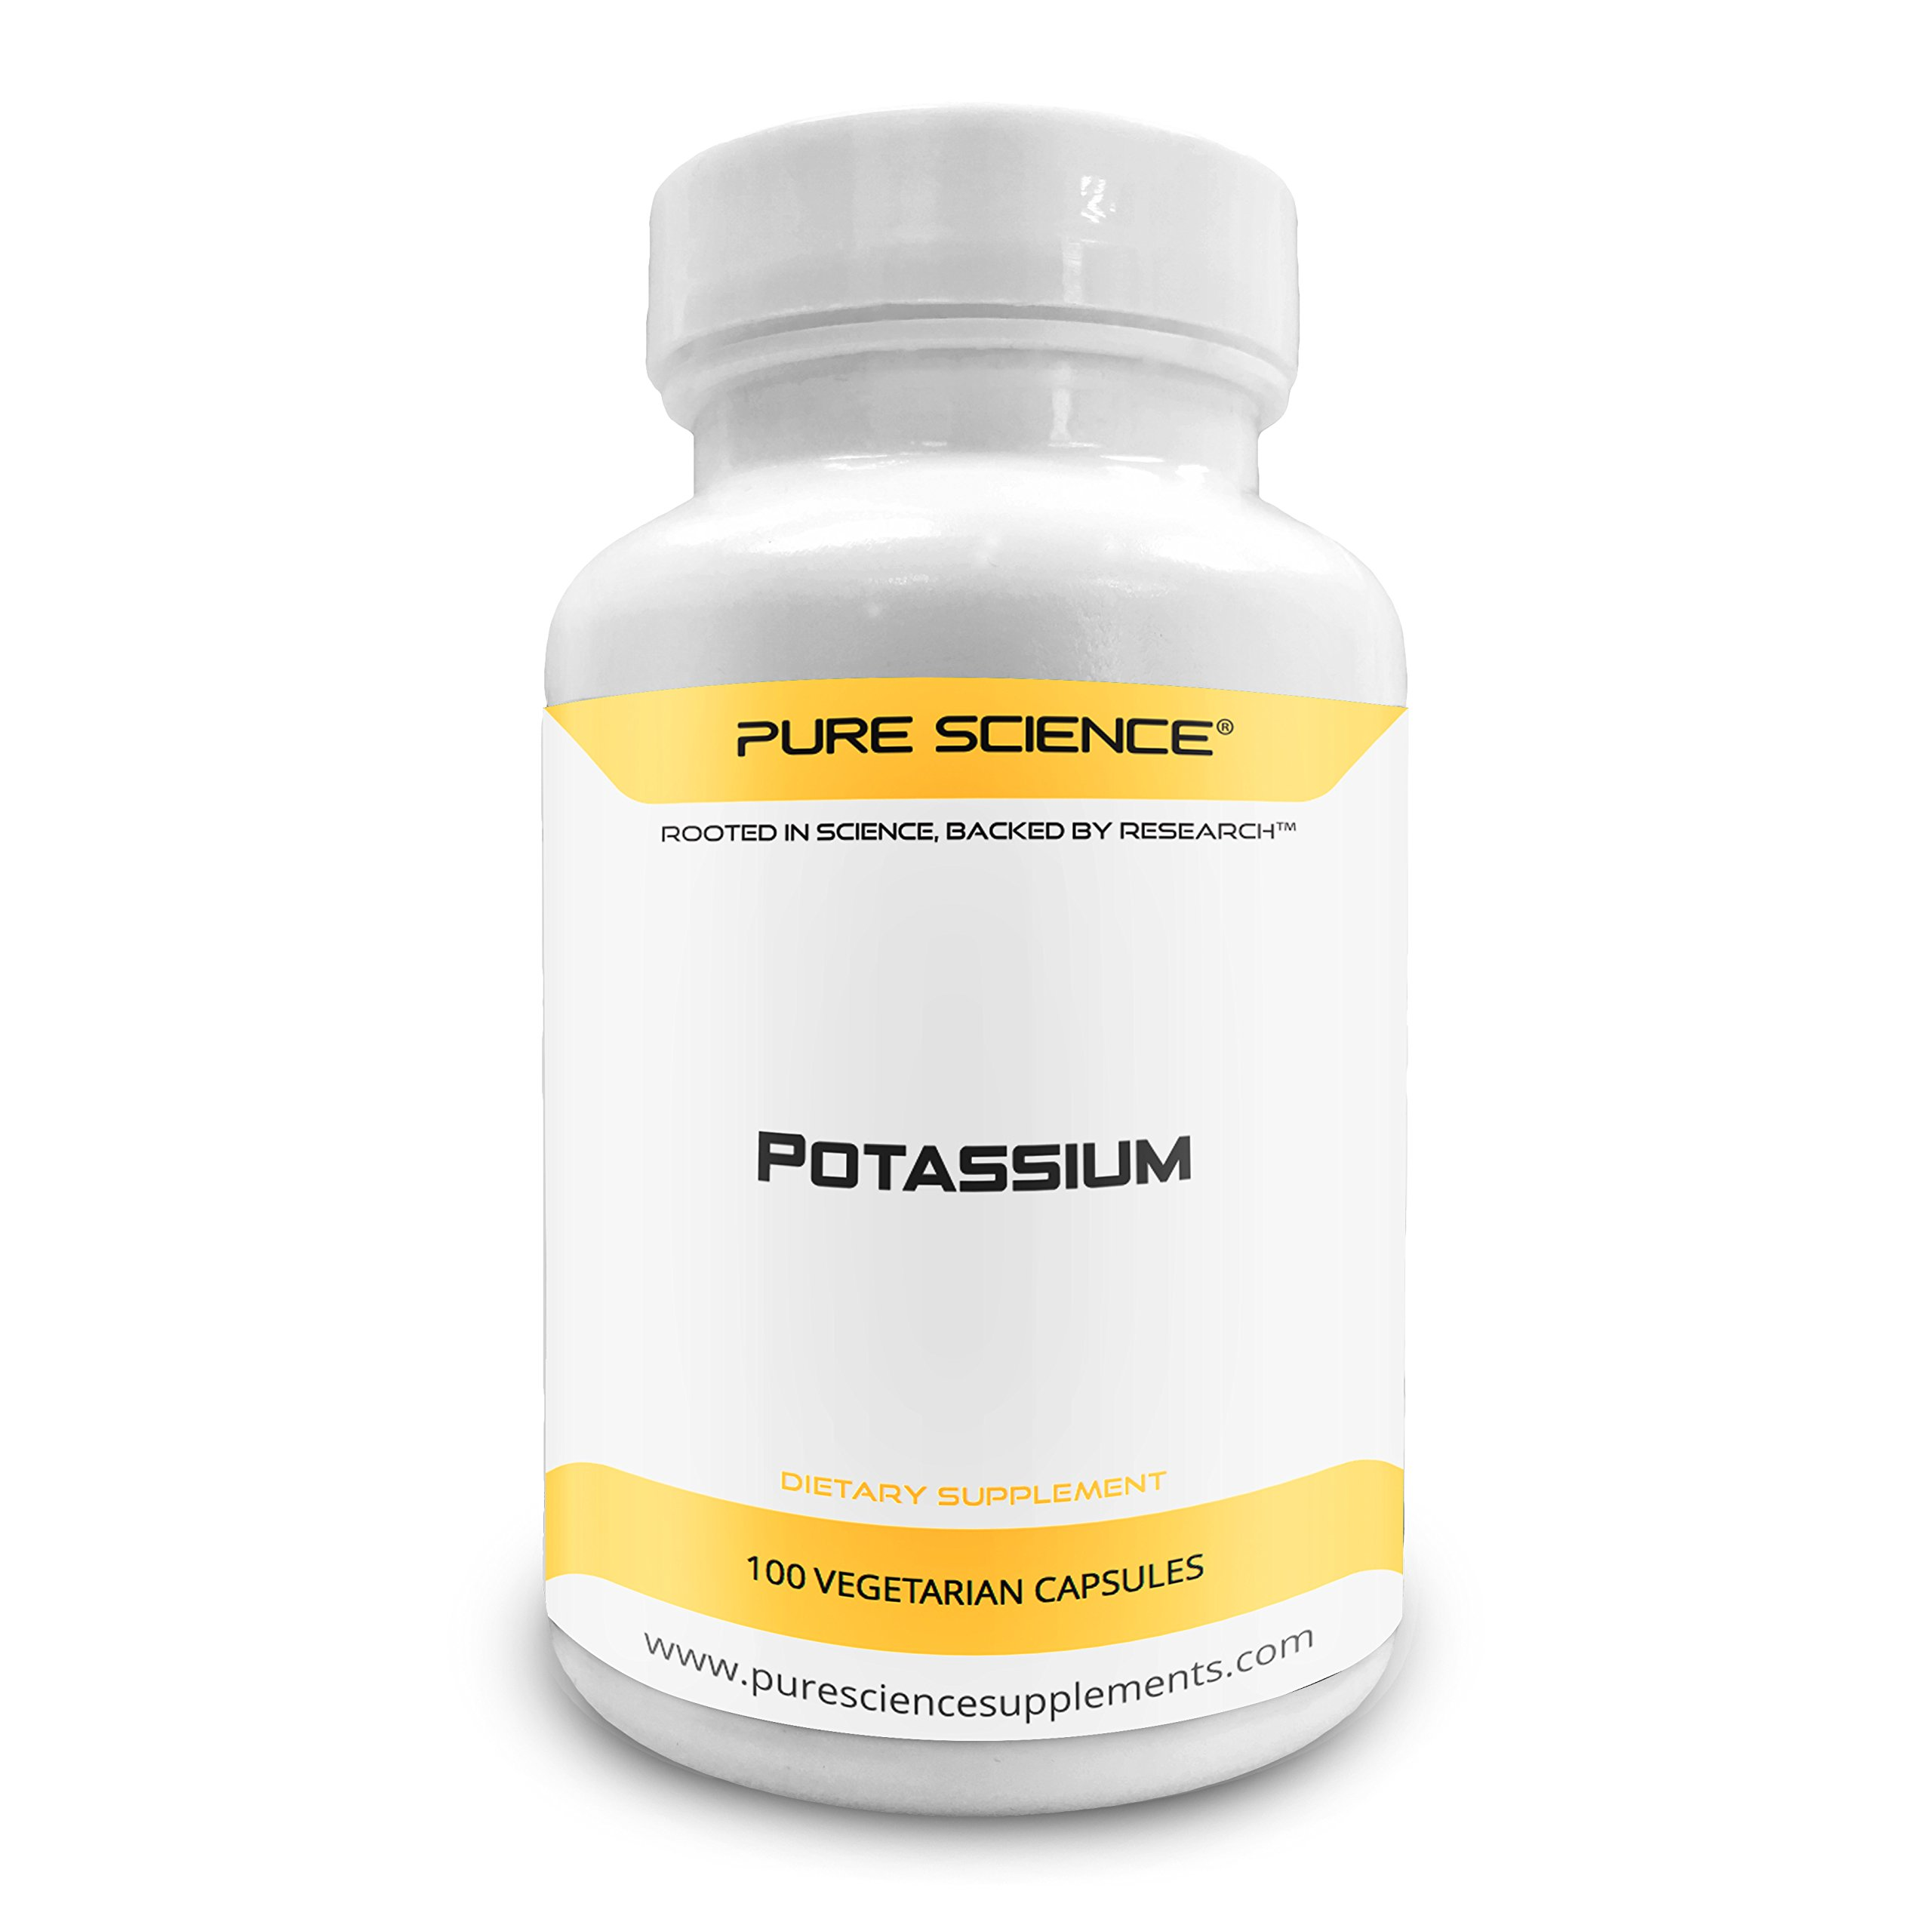 Pure Science Potassium Gluconate 595mg with 5mg BioPerine (Natural Bioavailability Enhancer for better absorption) – Regulates Blood Pressure, Supports Bone & Muscle Maintenance – 100 Vegetarian Caps